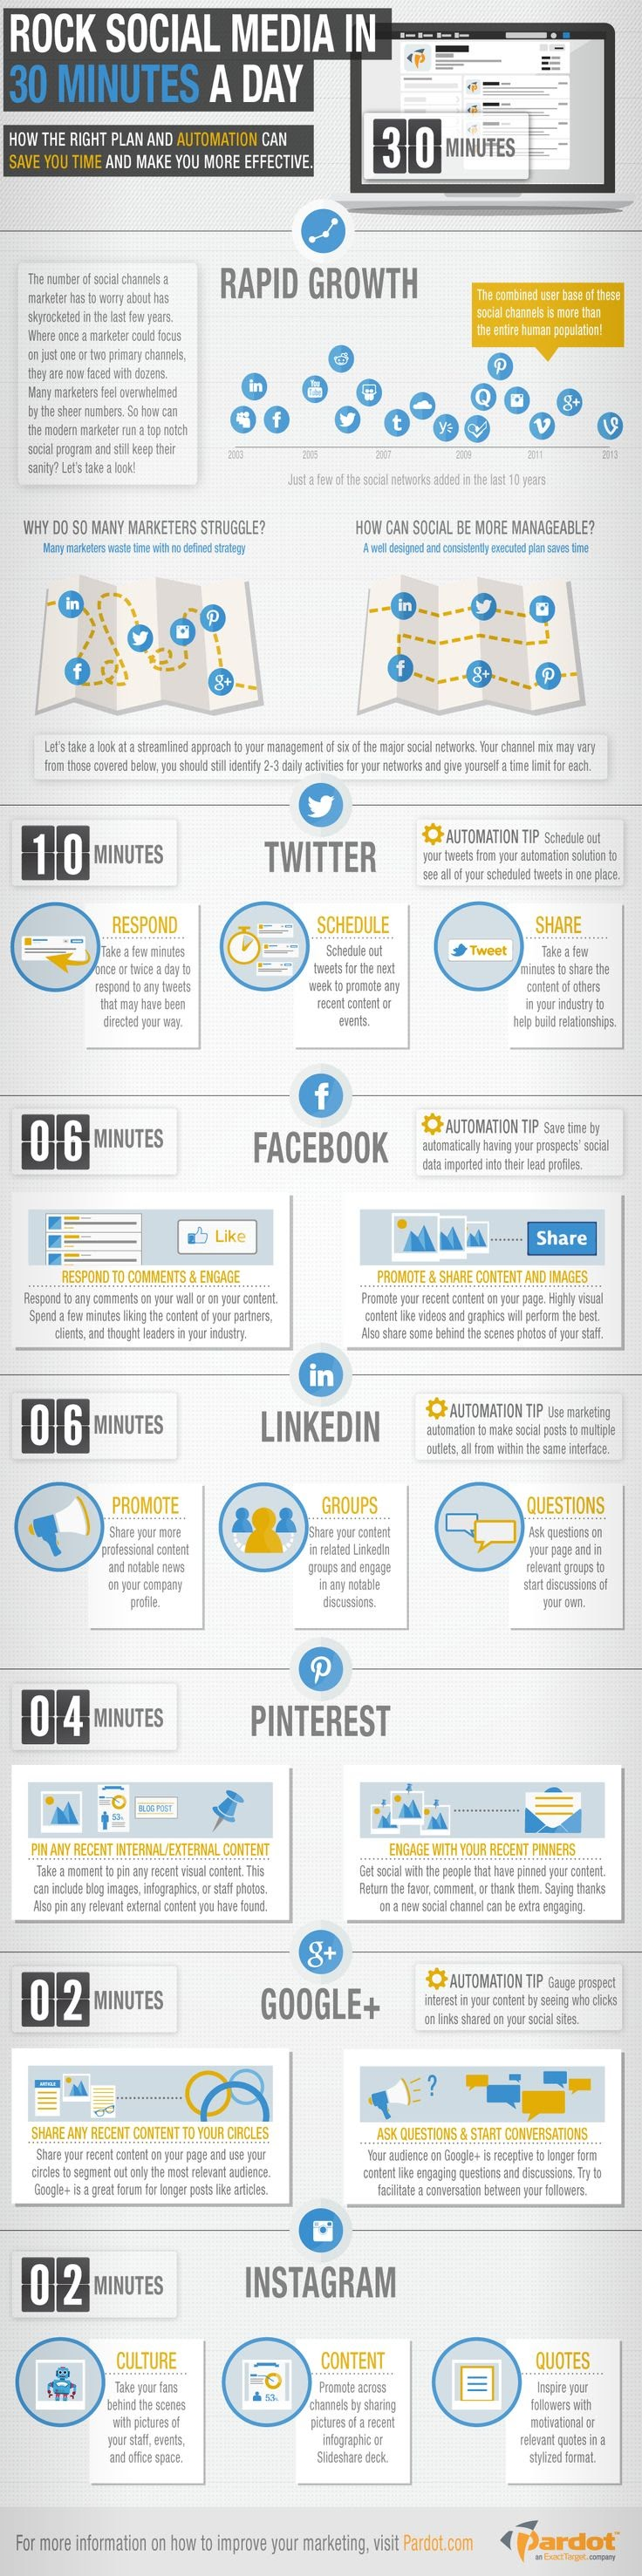 Rock Social Media In 30 Minutes A Day  #Infographic